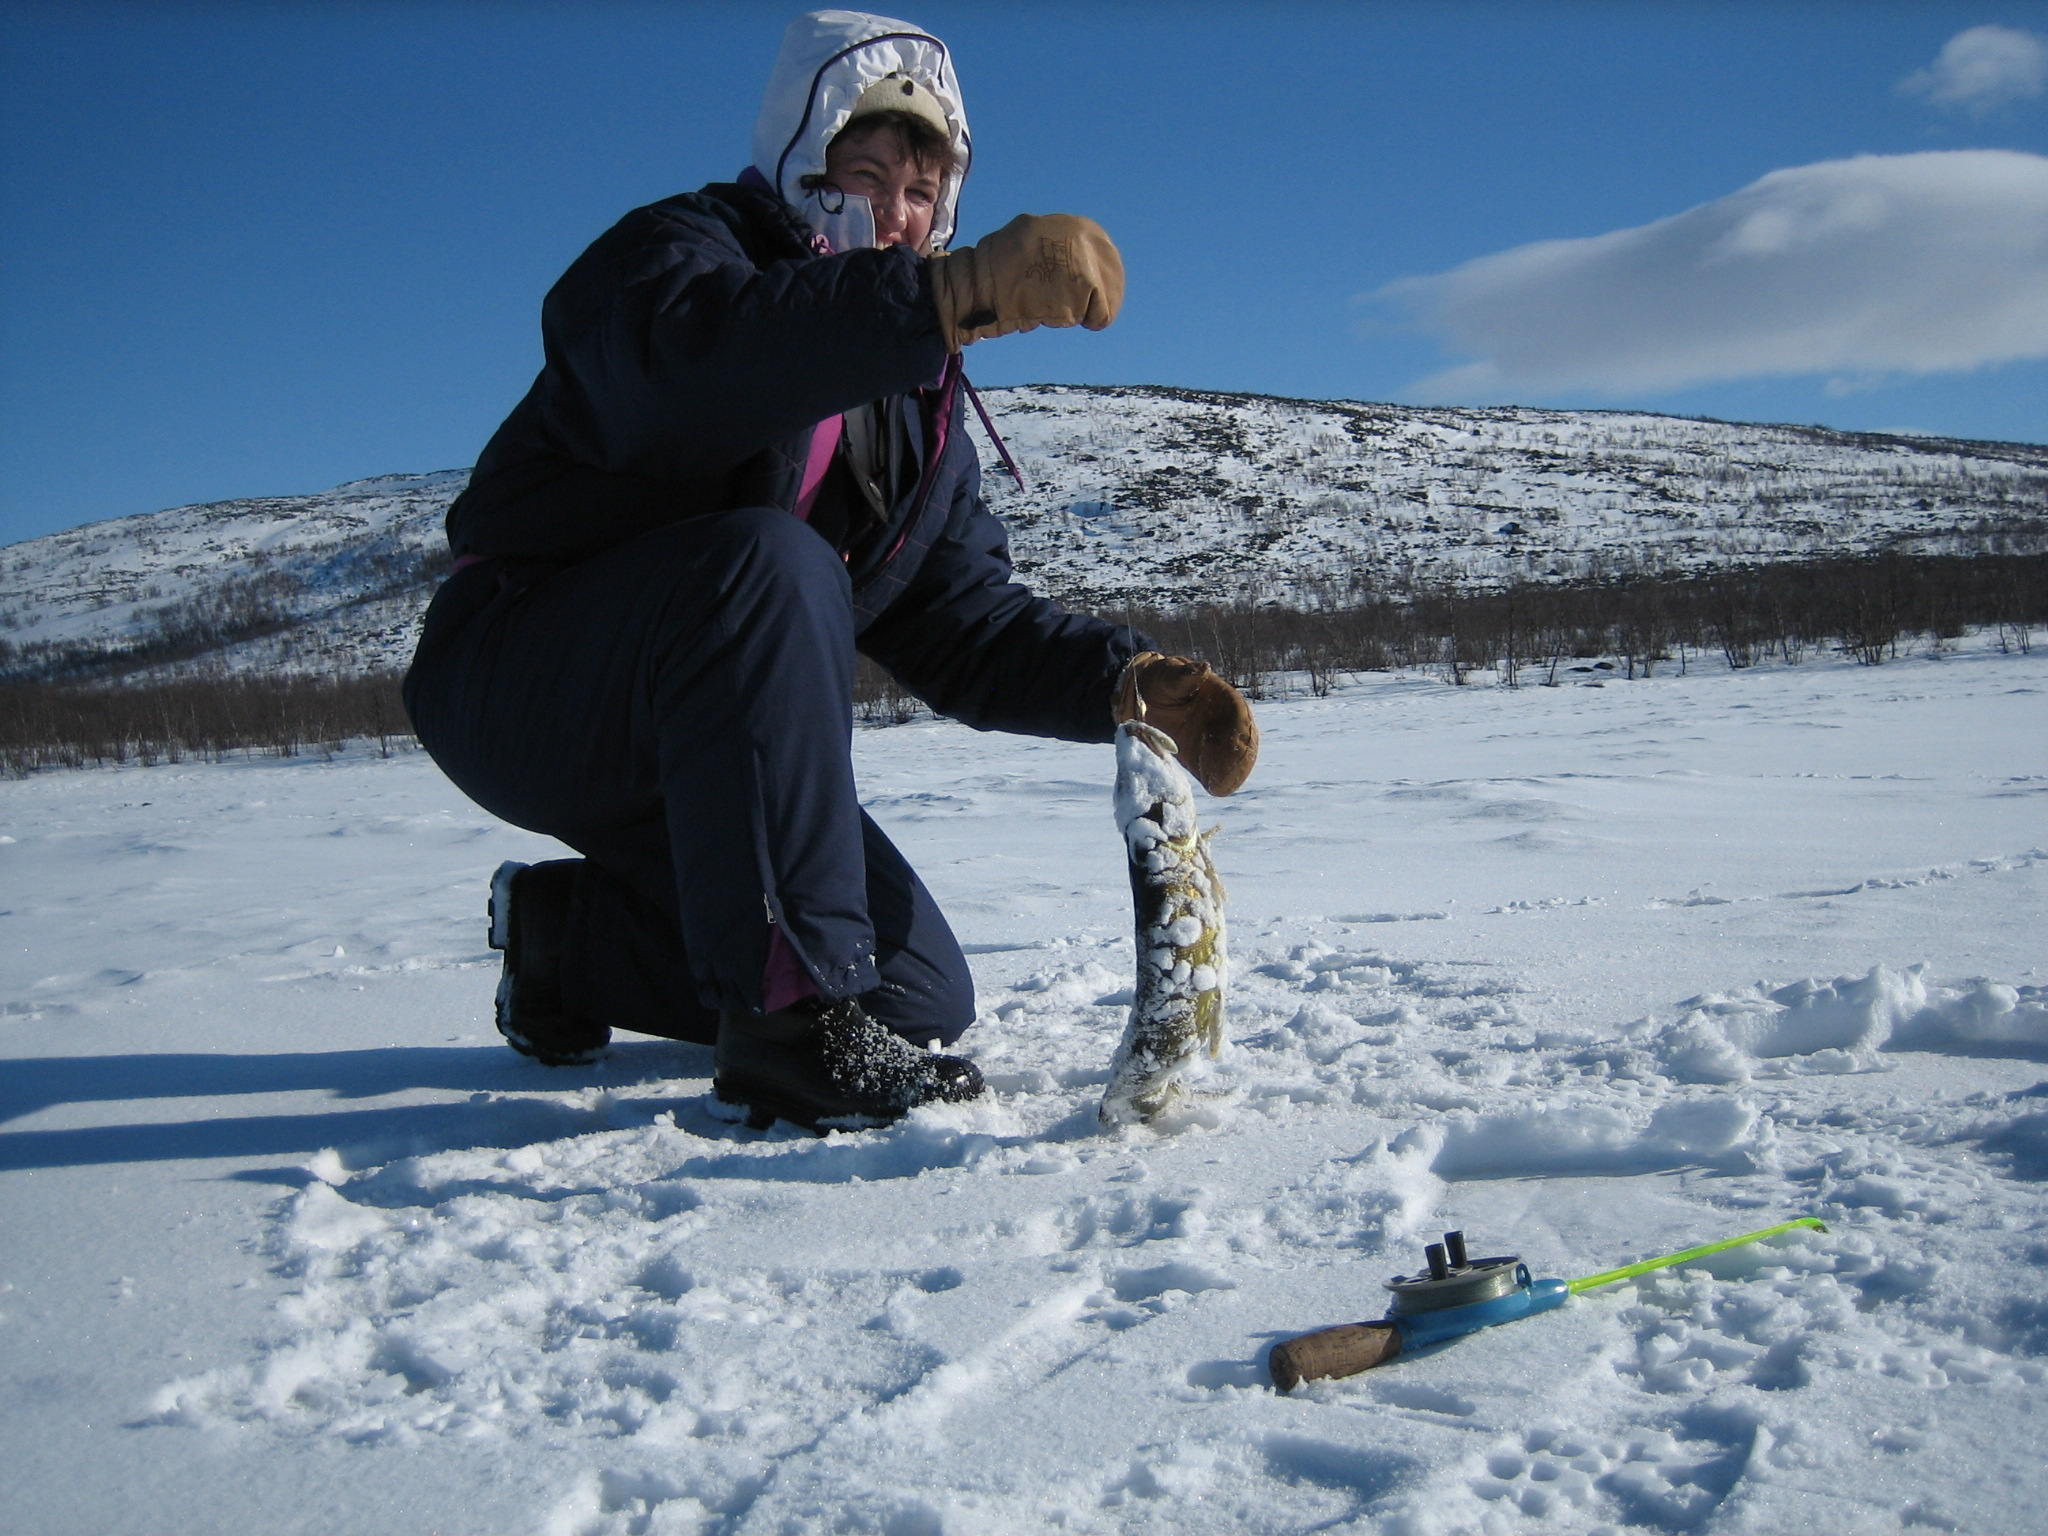 Ice-fishing basics